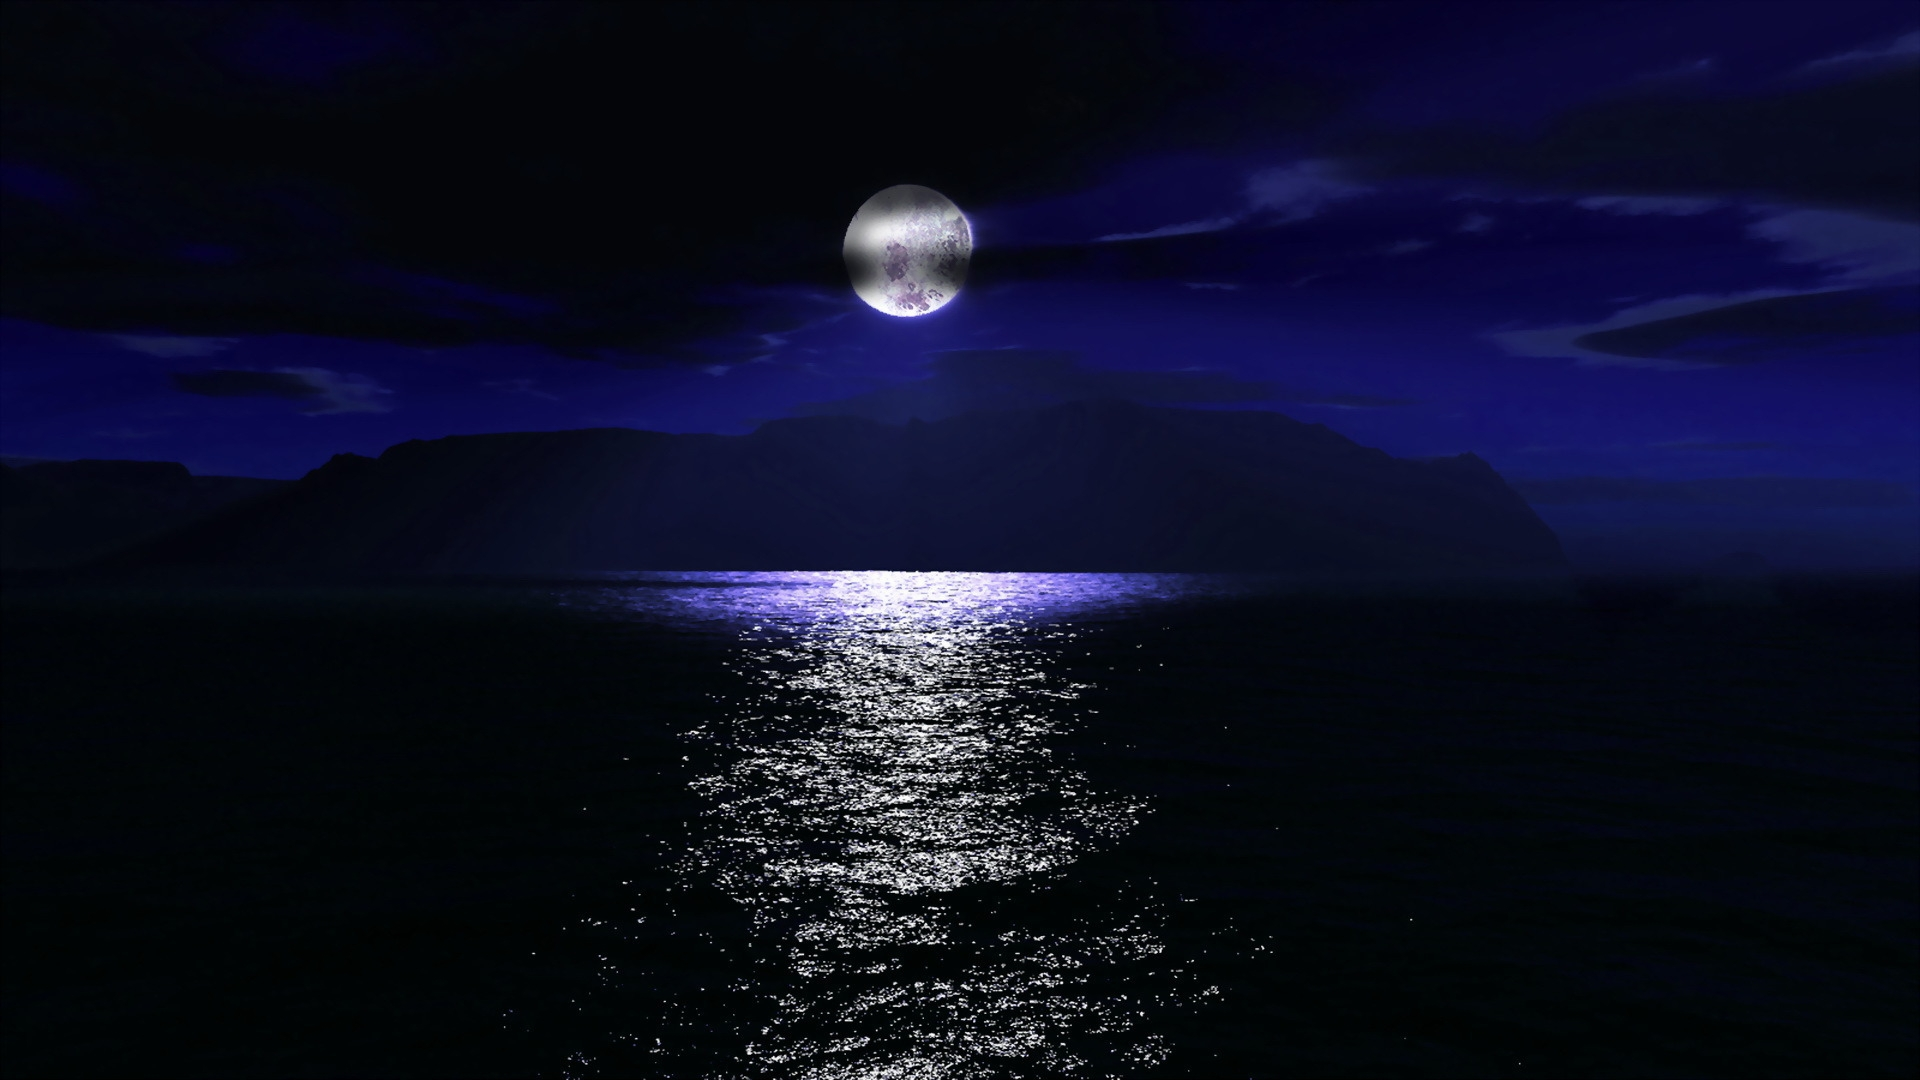 34374 download wallpaper Landscape, Sea, Night, Moon screensavers and pictures for free